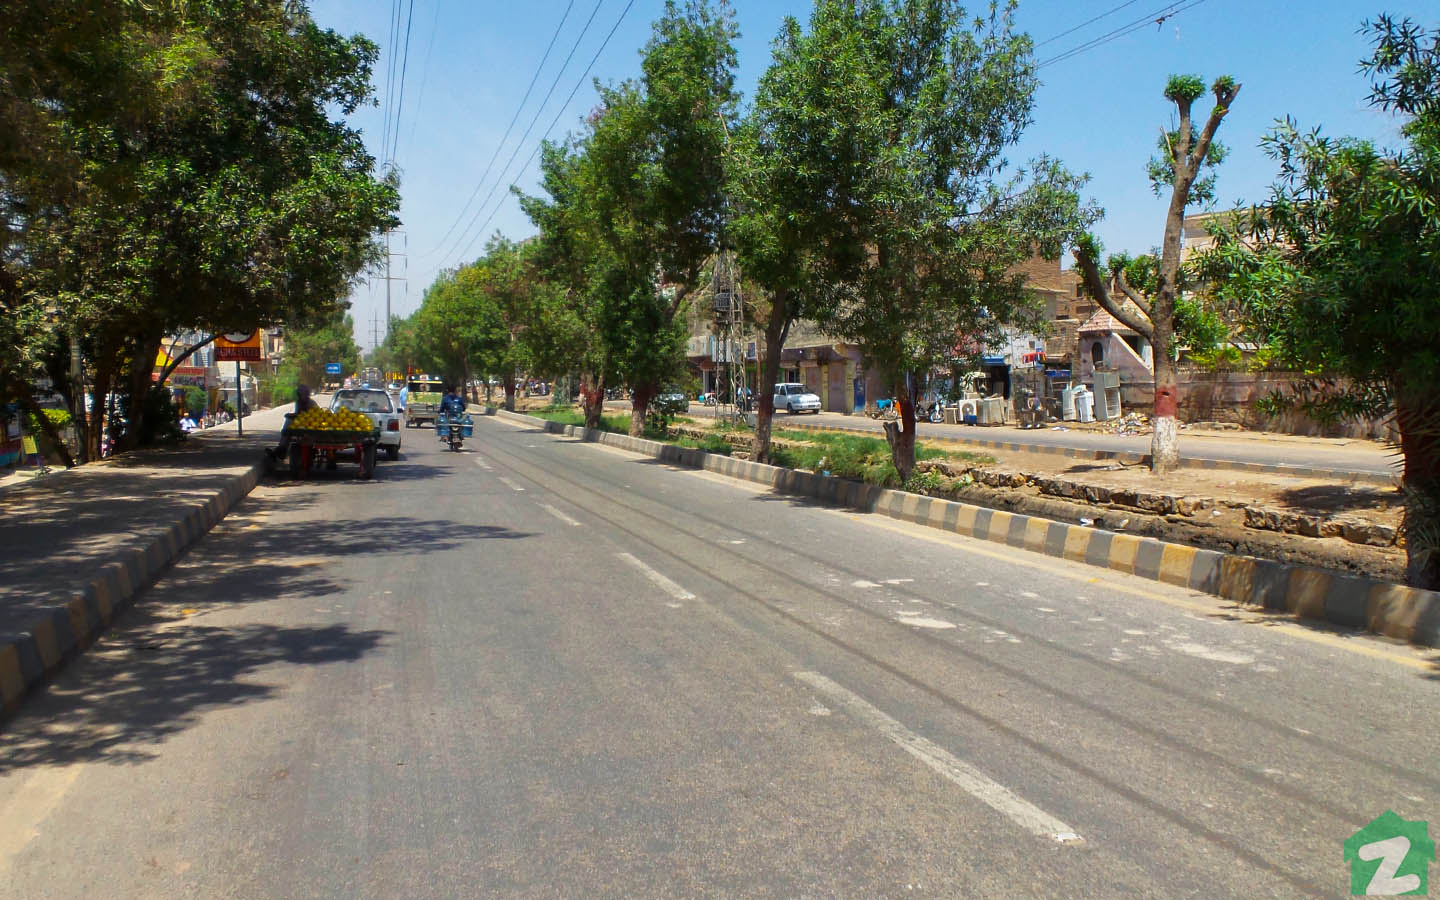 Well-developed societies of Qasimabad